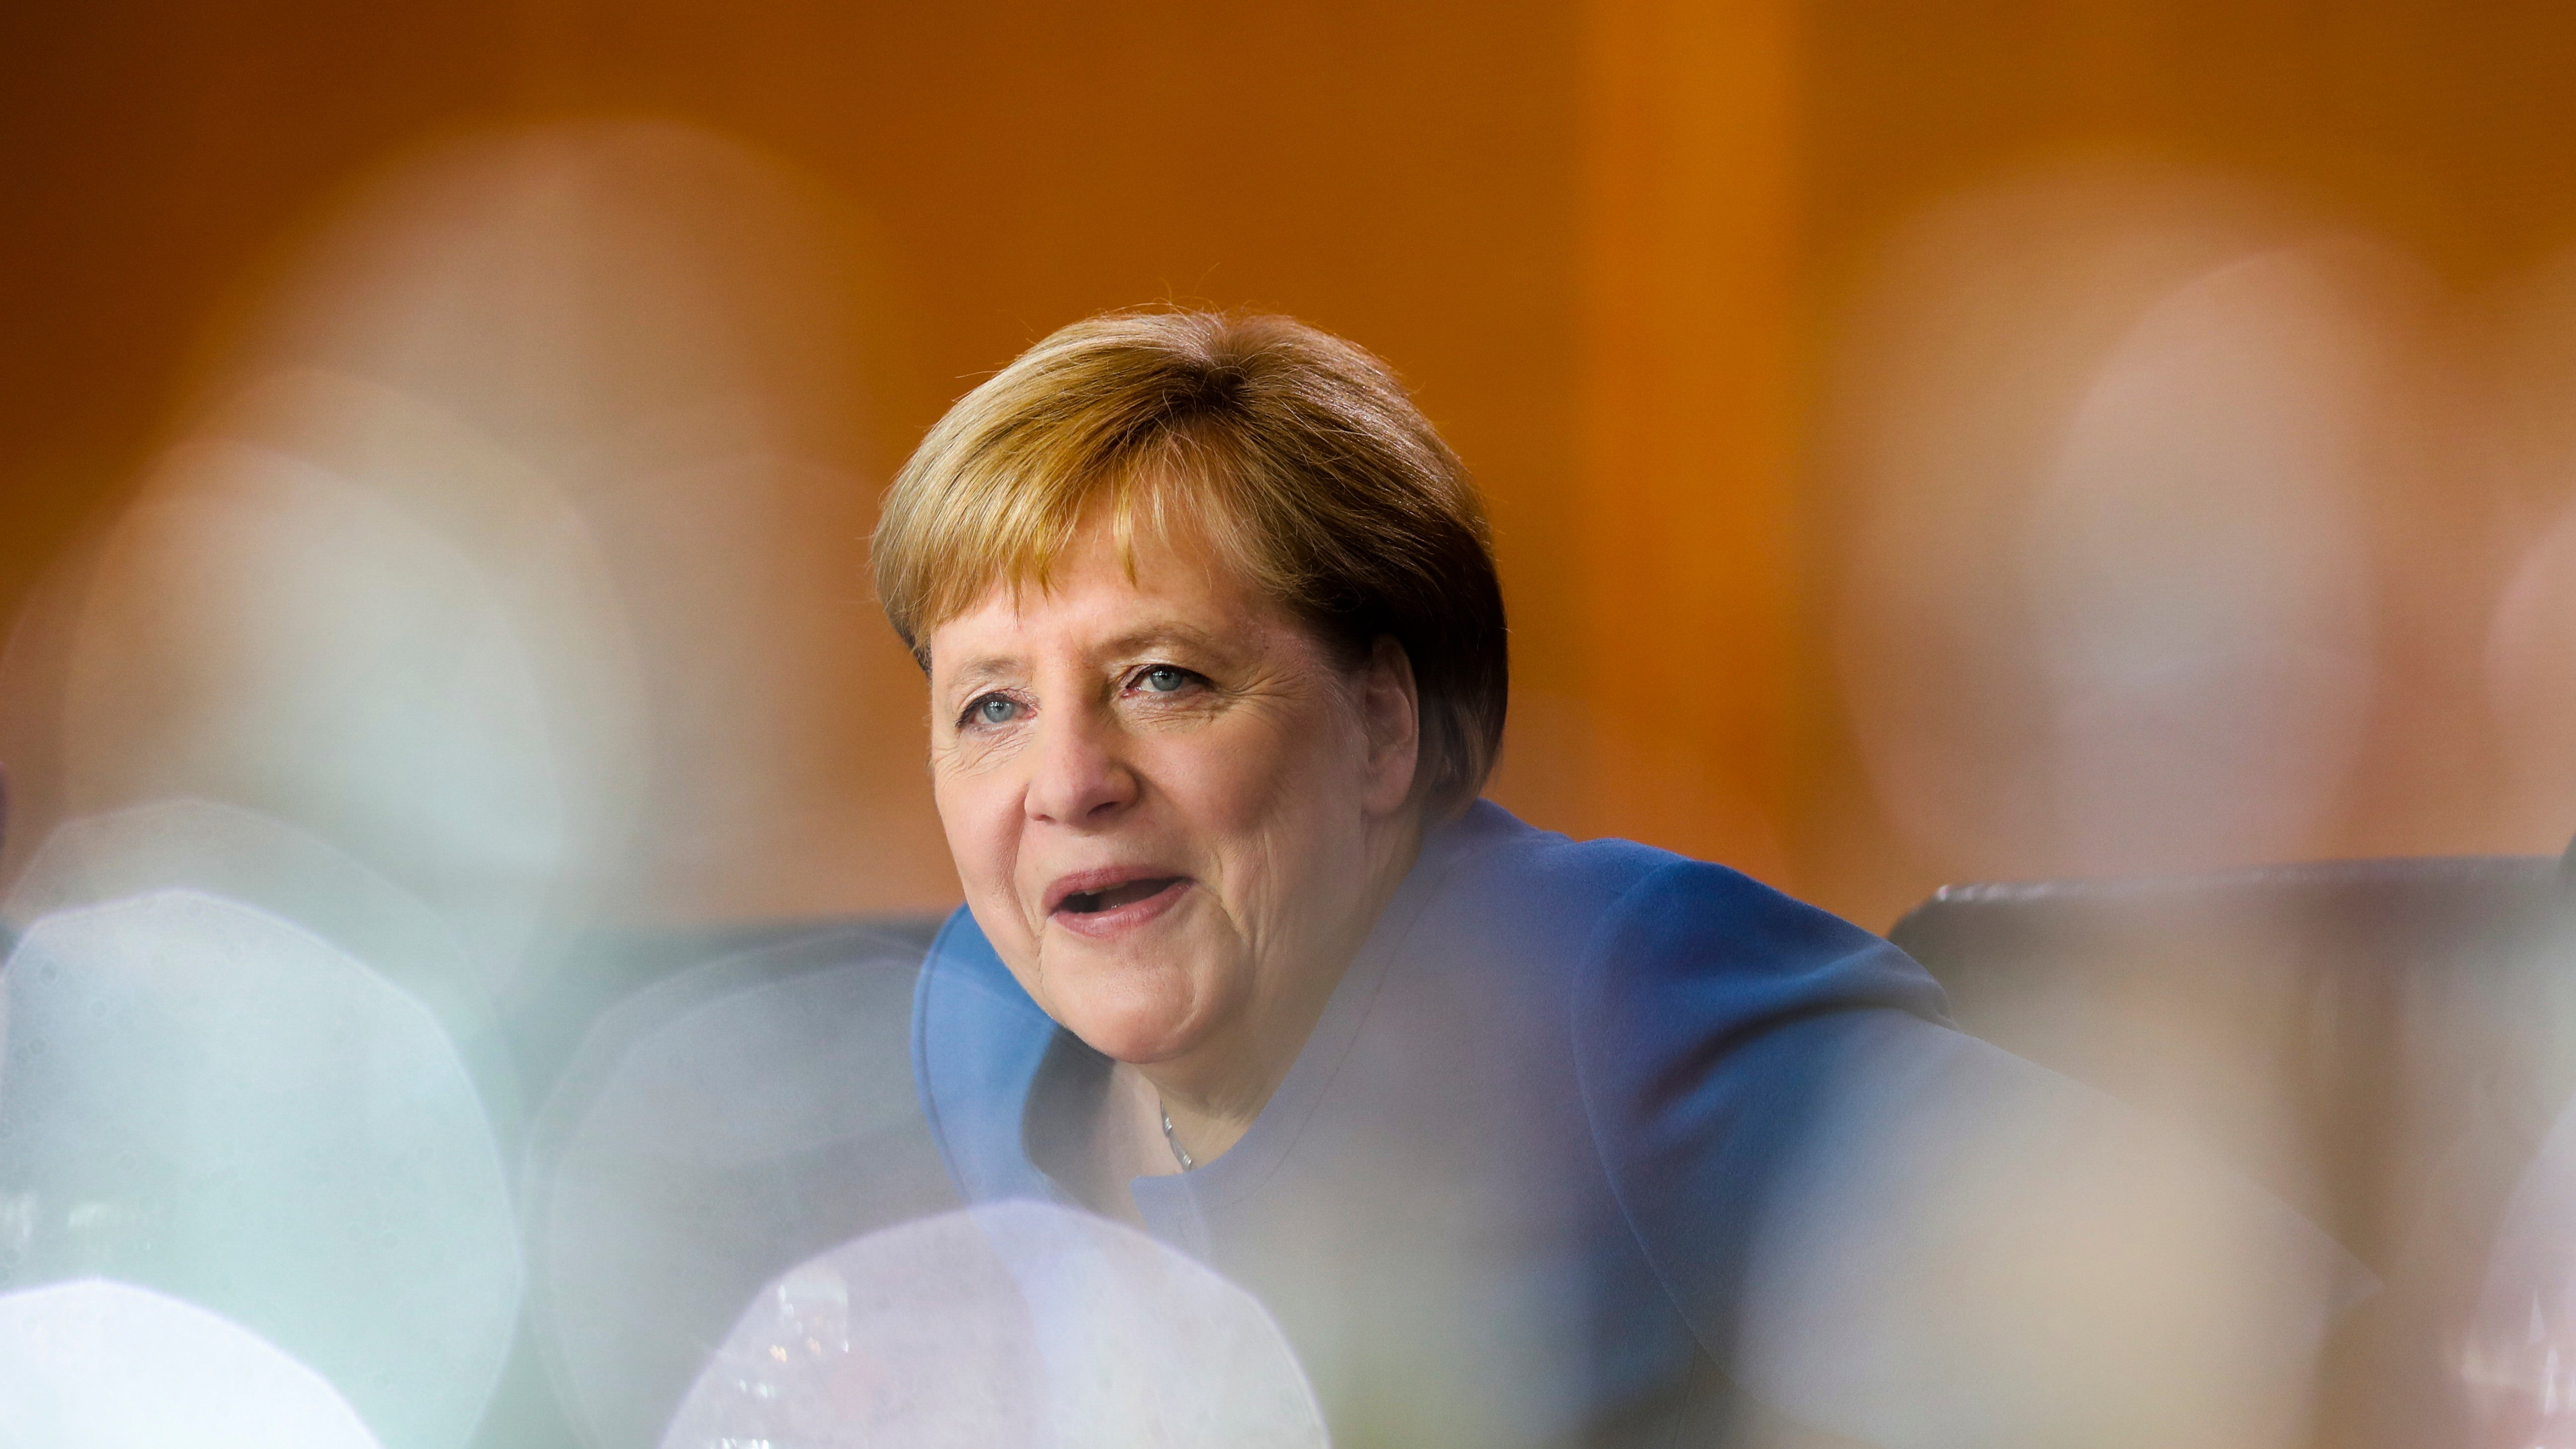 Germany's New $88 Billion Climate Package Does The Bare Minimum